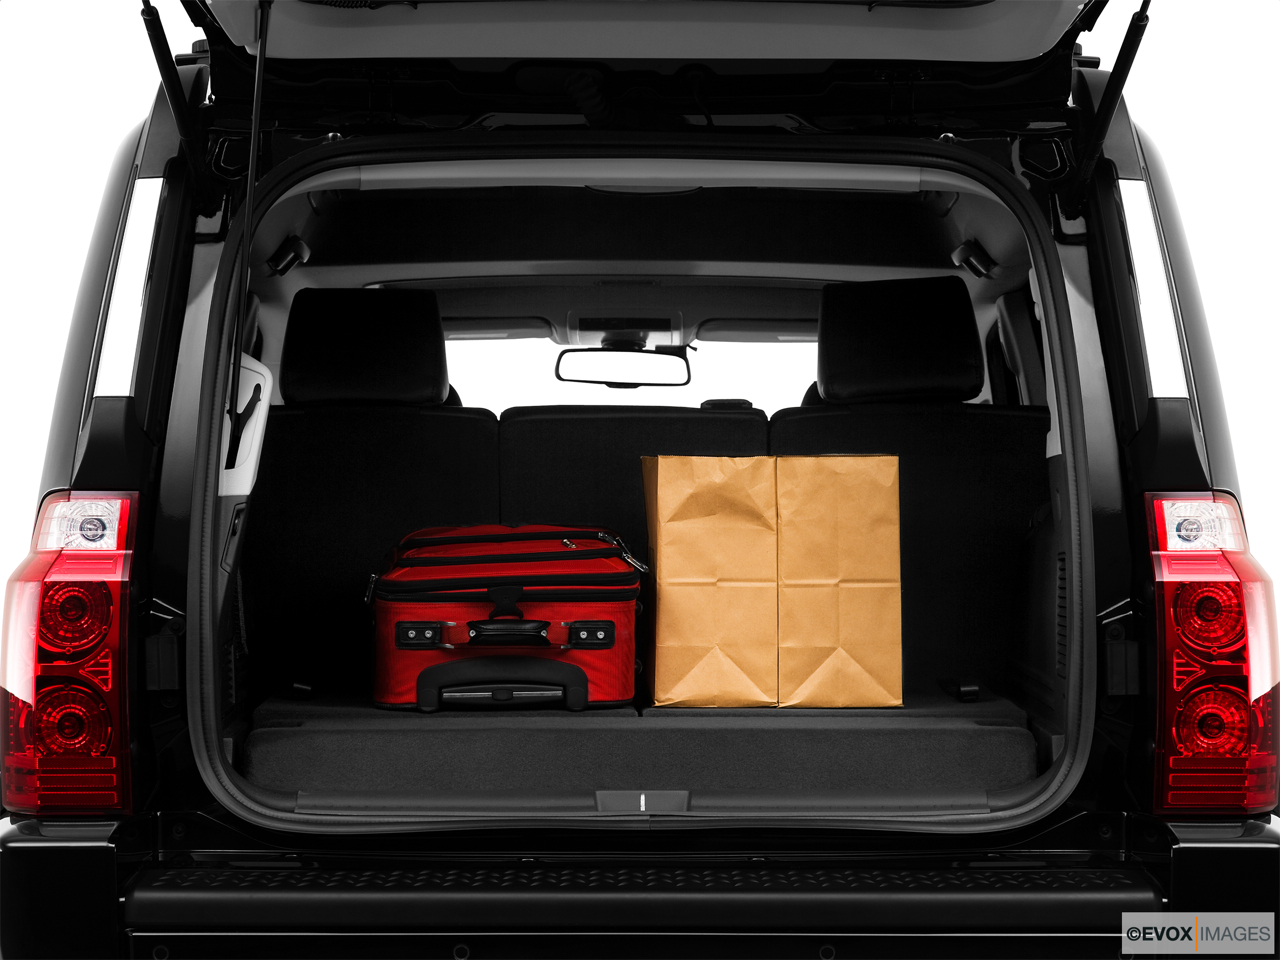 2010 Jeep Commander Limited Trunk props.